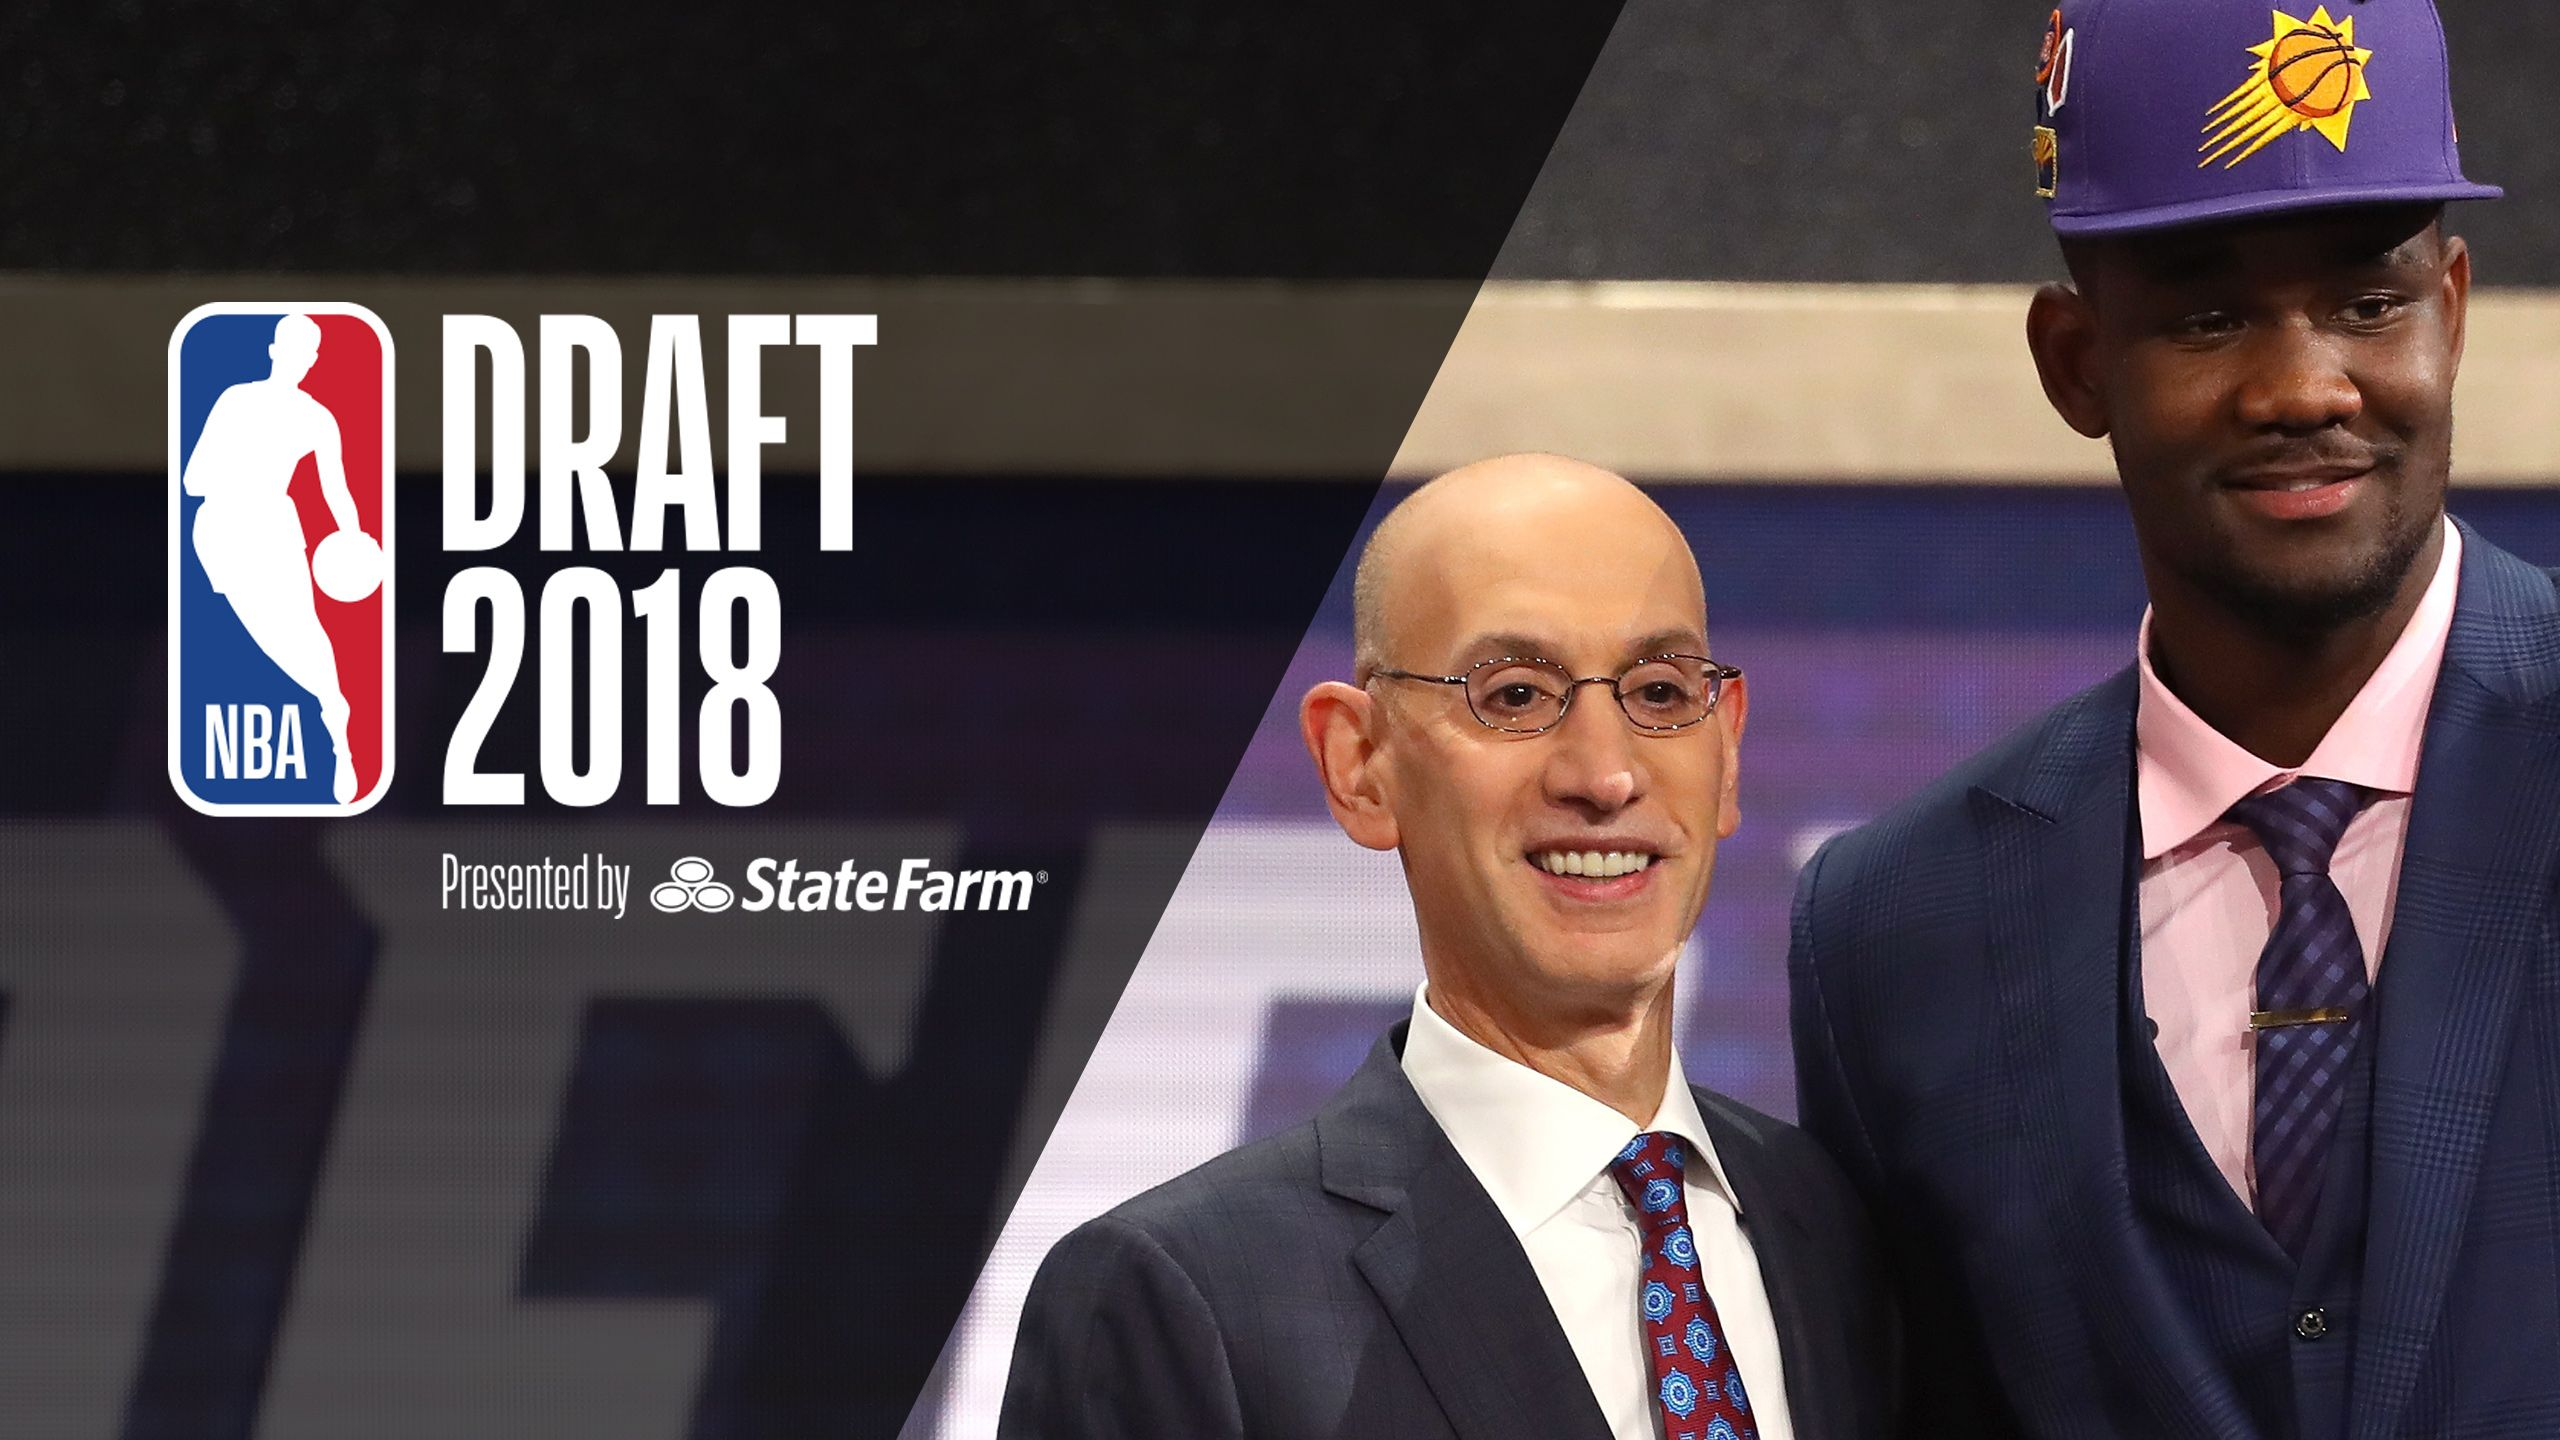 NBA Draft 2018